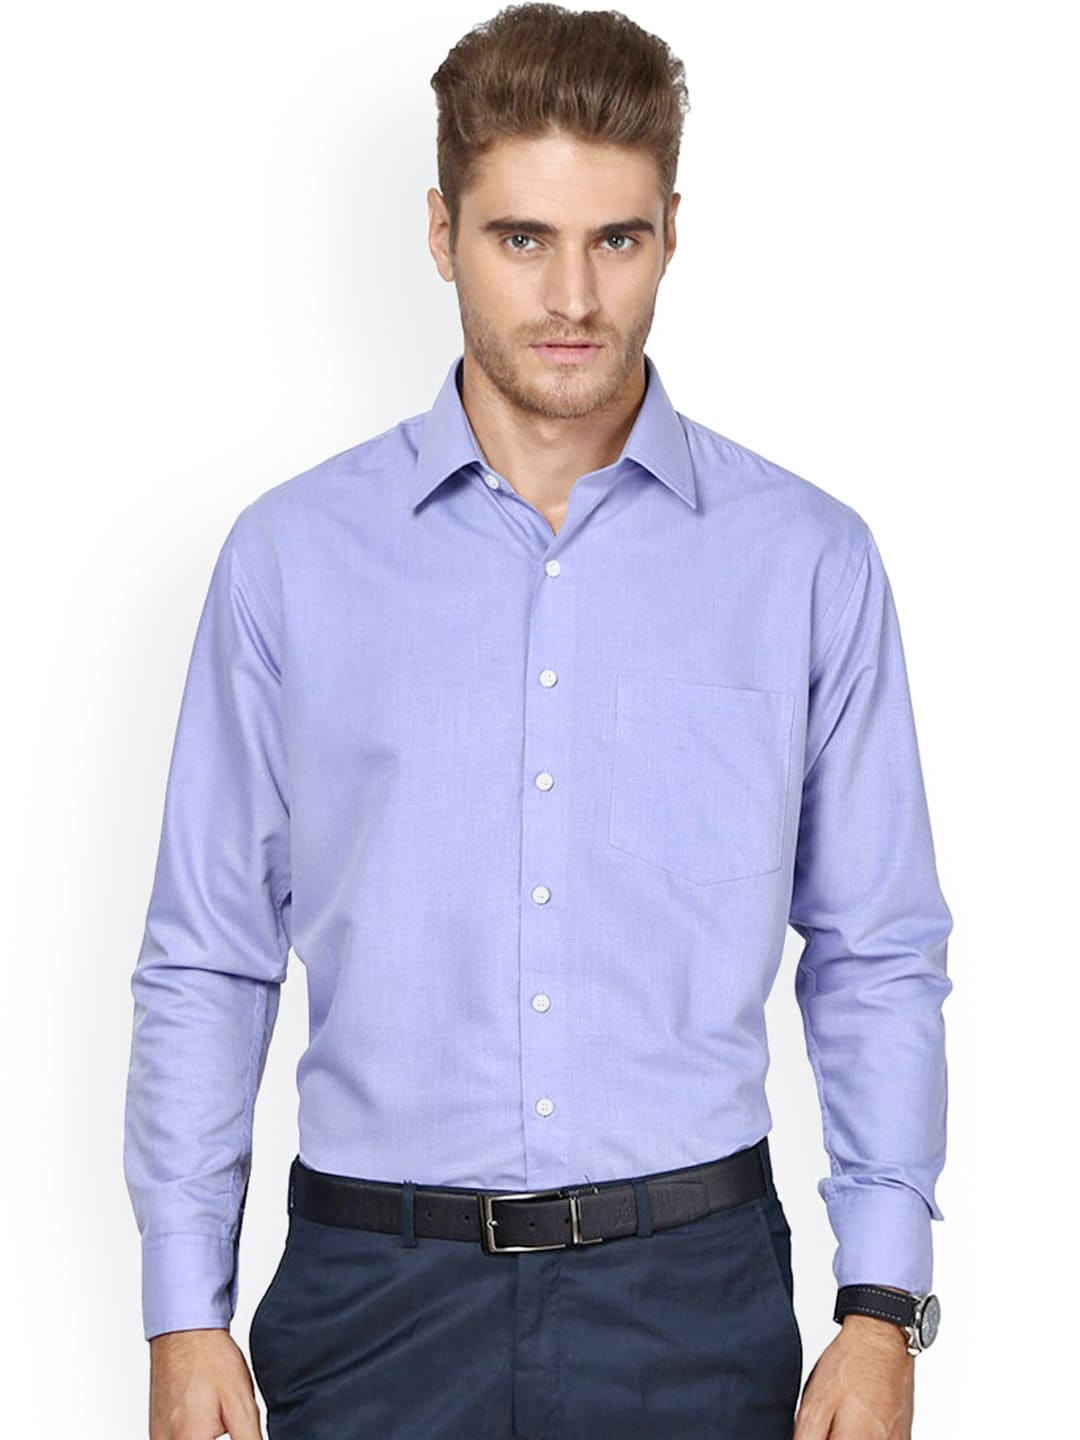 Mens Casual Dress Shirts Long Sleeve